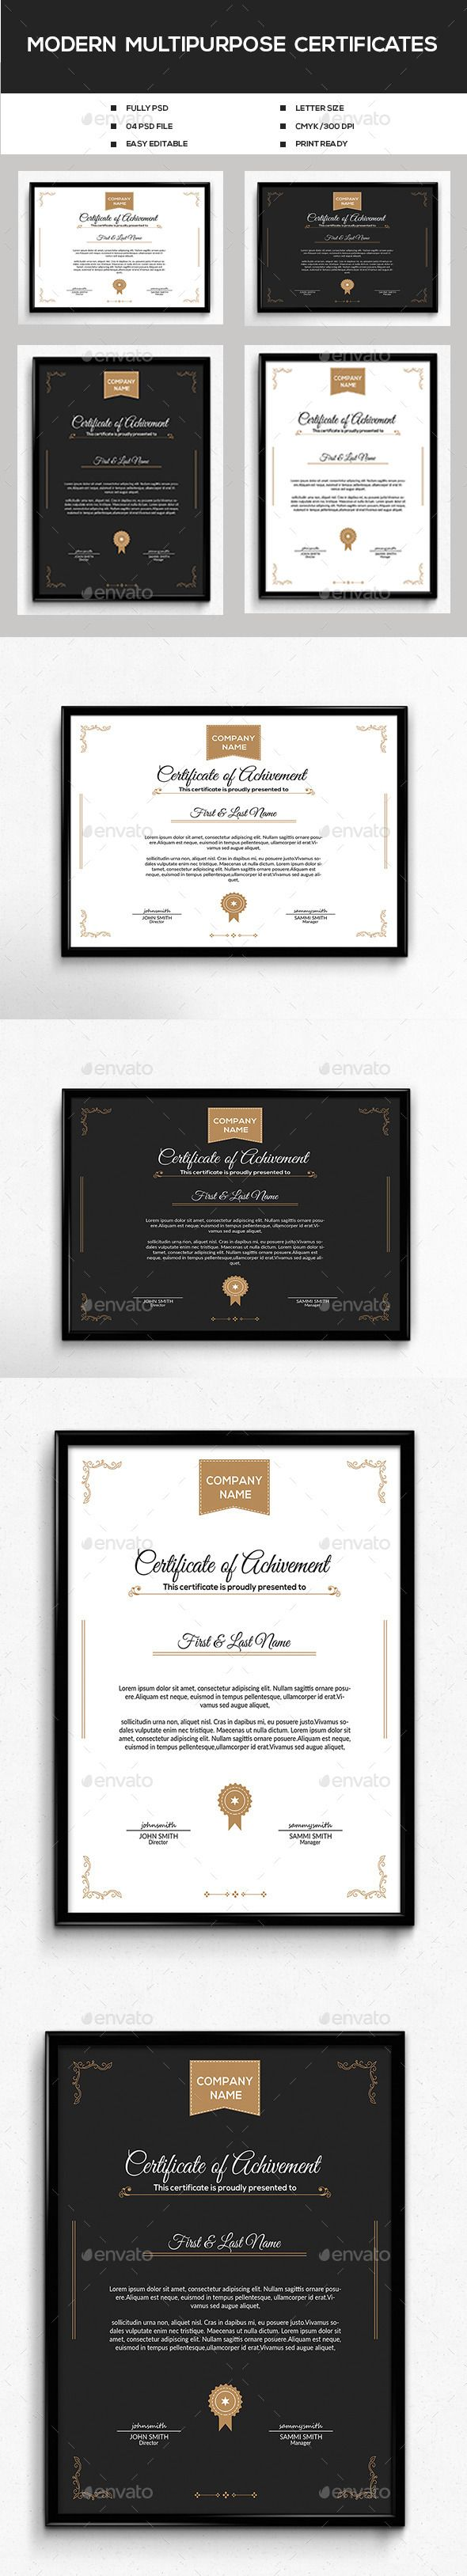 34 best cert design images on pinterest award certificates design modern multipurpose certificates template psd download here httpgraphicriver yelopaper Image collections